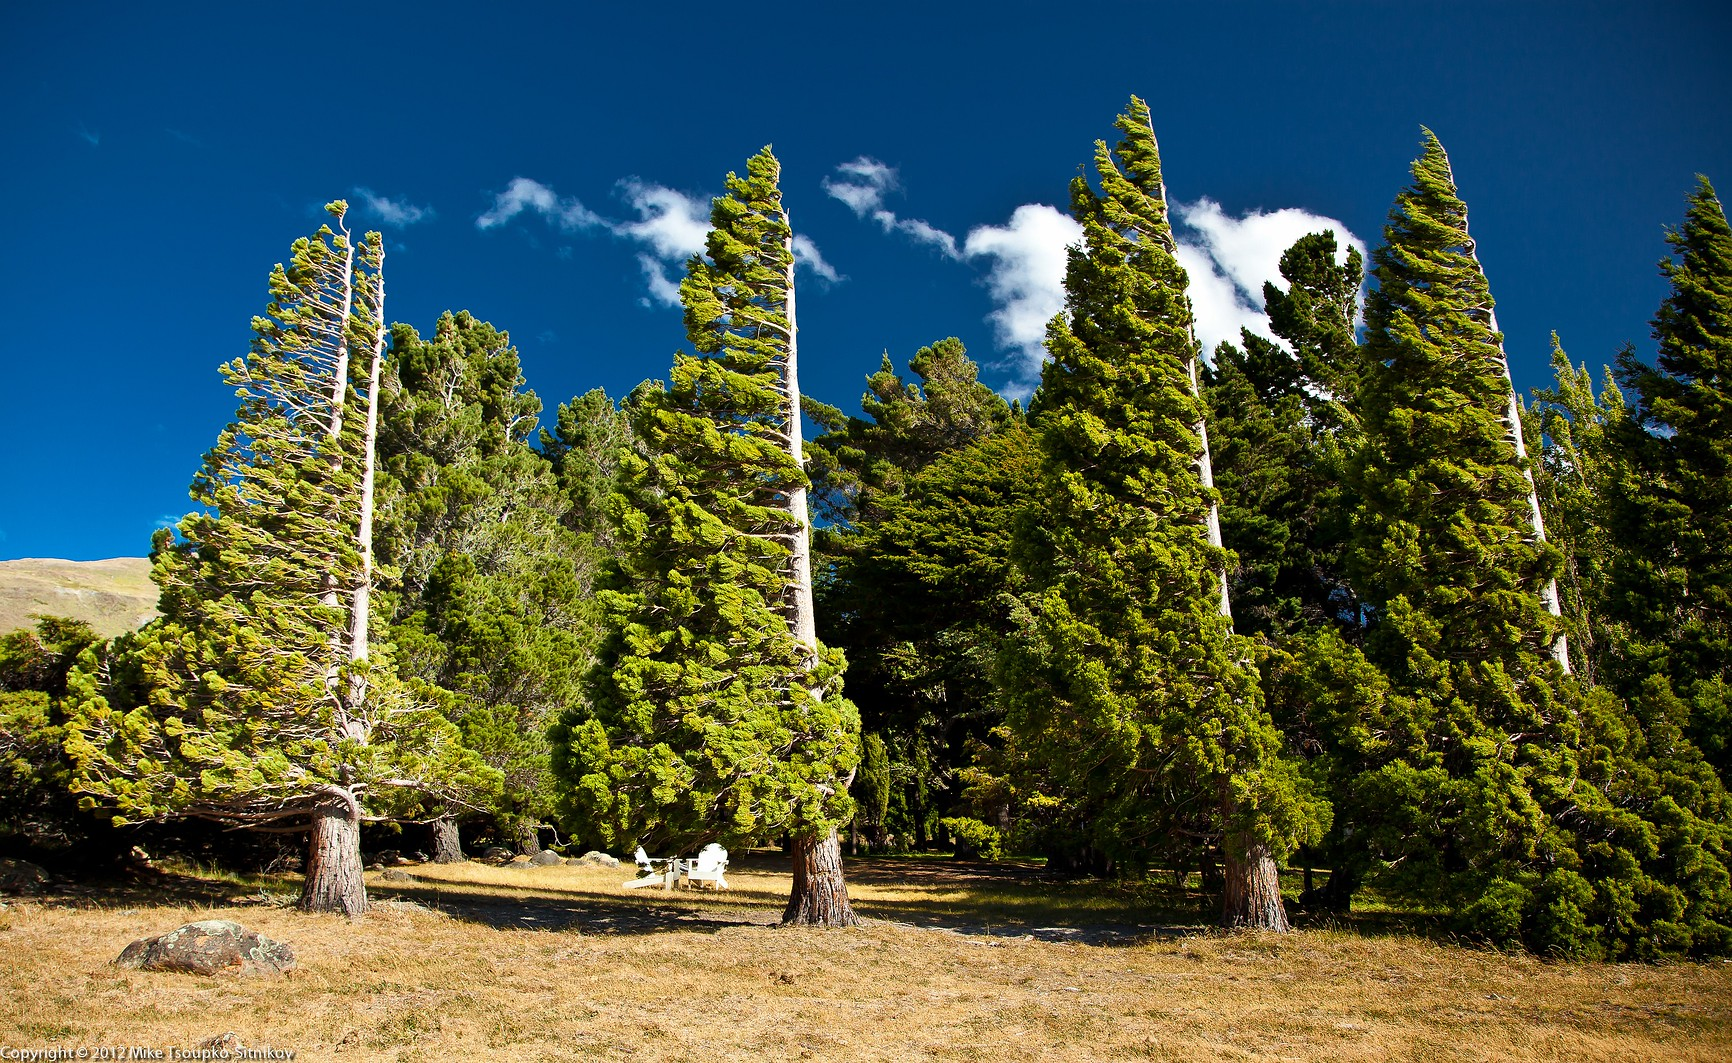 Wind-shaped trees around the lodge